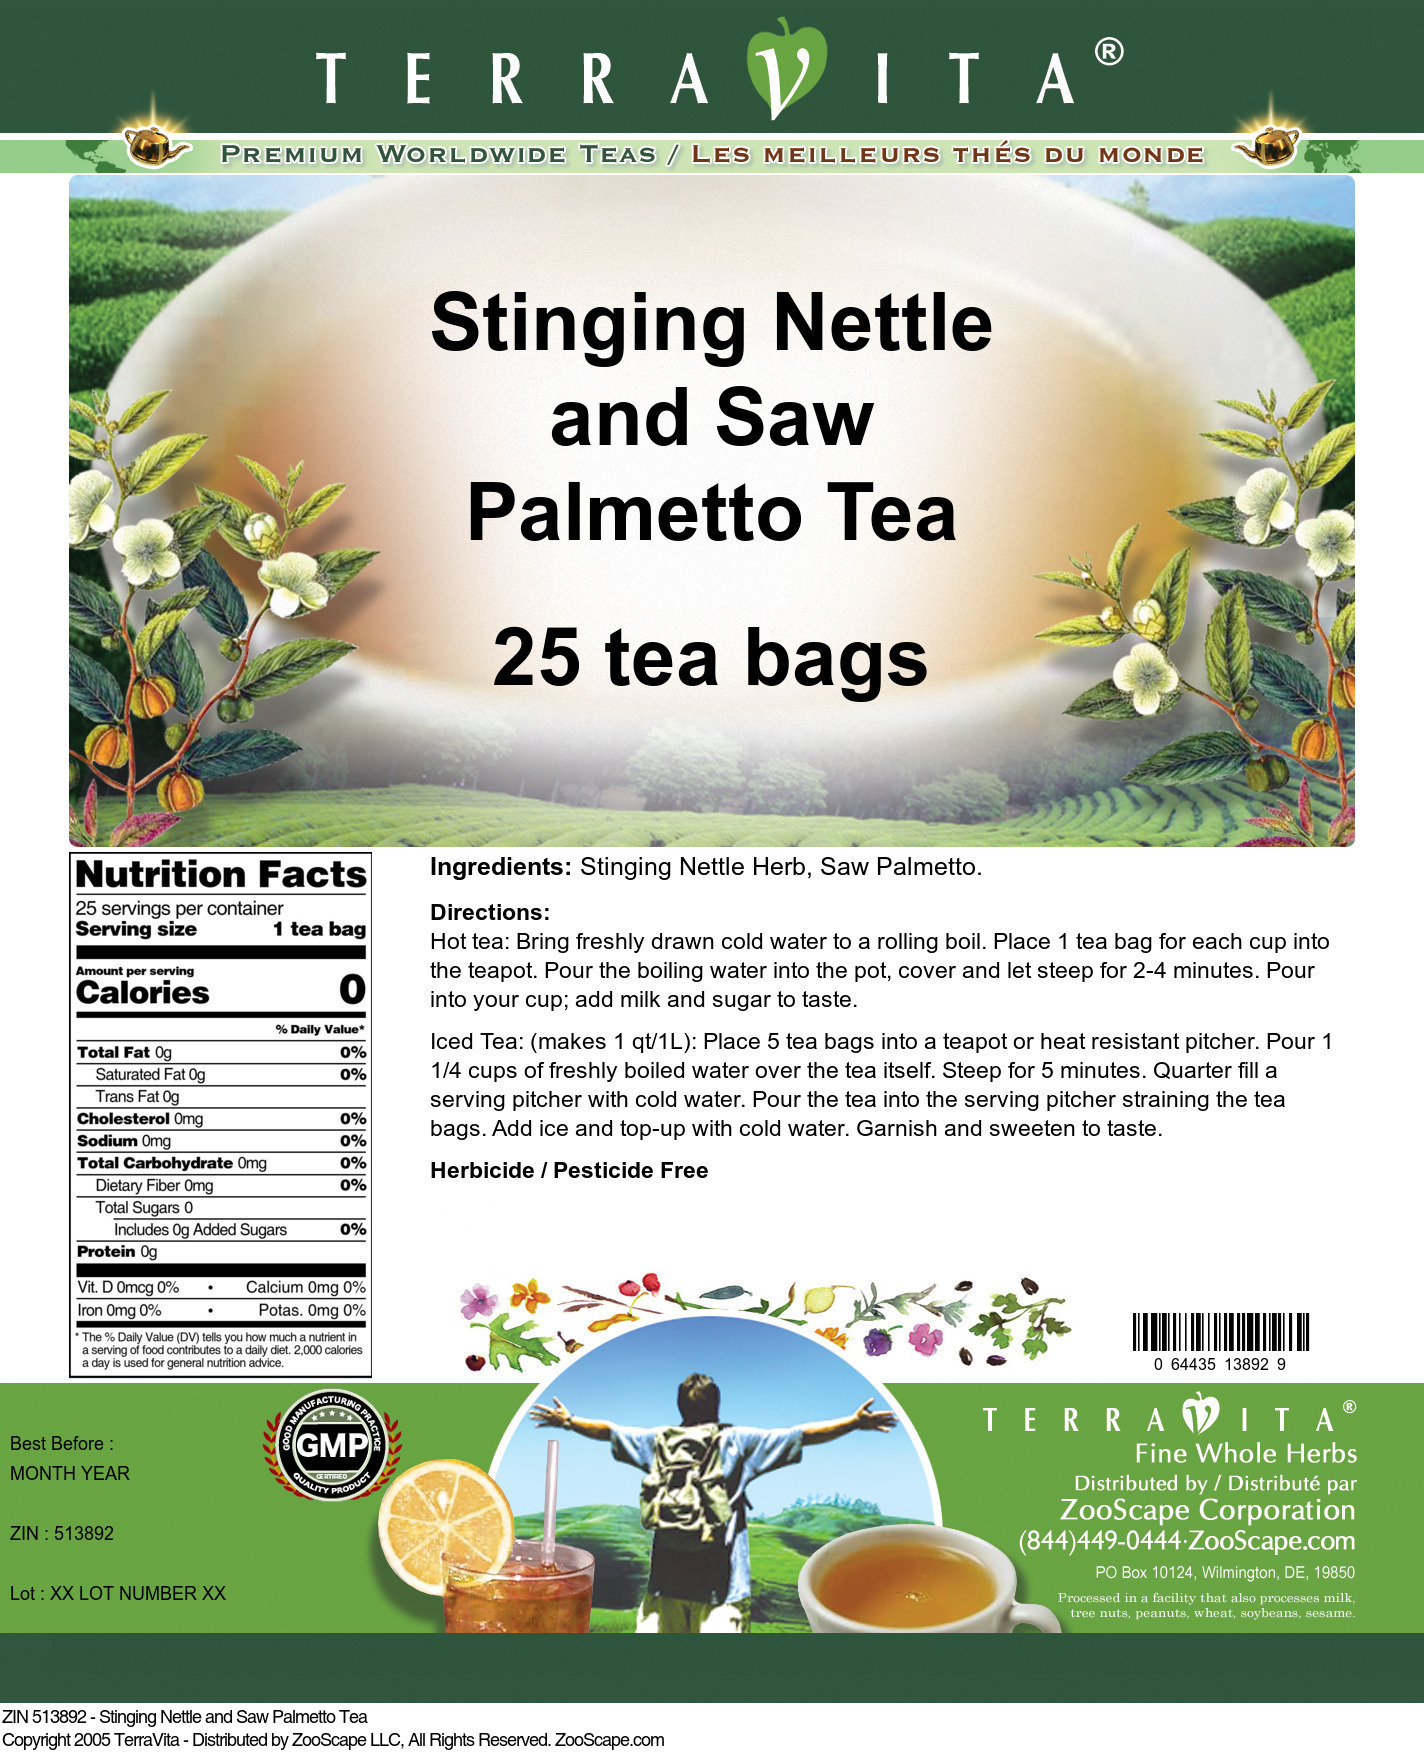 Stinging Nettle and Saw Palmetto Tea